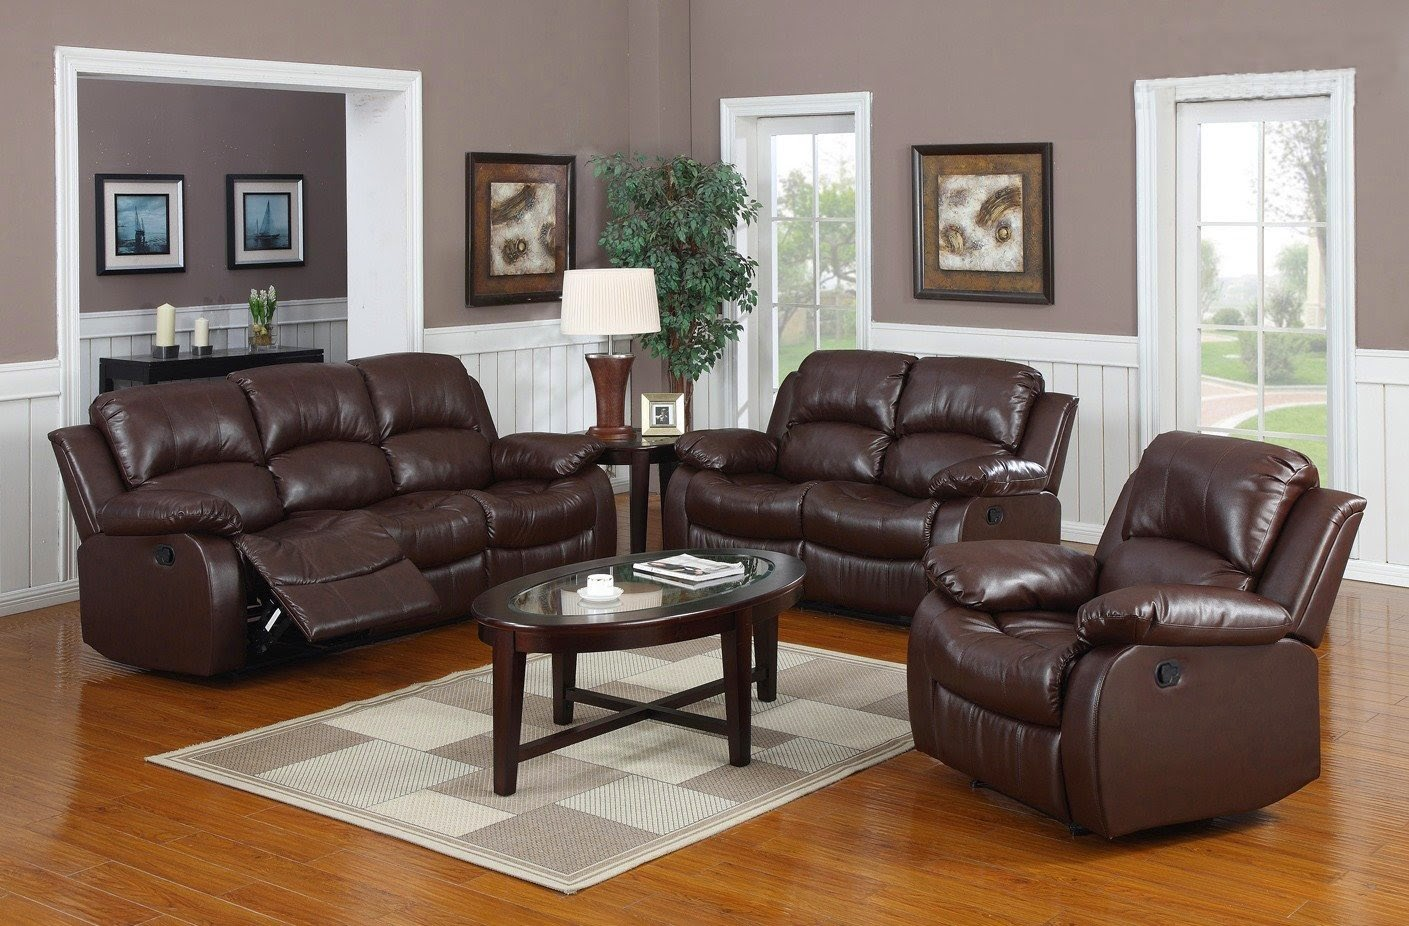 Cheap Reclining Sofas Sale Leather Reclining Sofa Costco : leather reclining sofa set from cheaprecliningsofassale.blogspot.com size 1409 x 926 jpeg 273kB